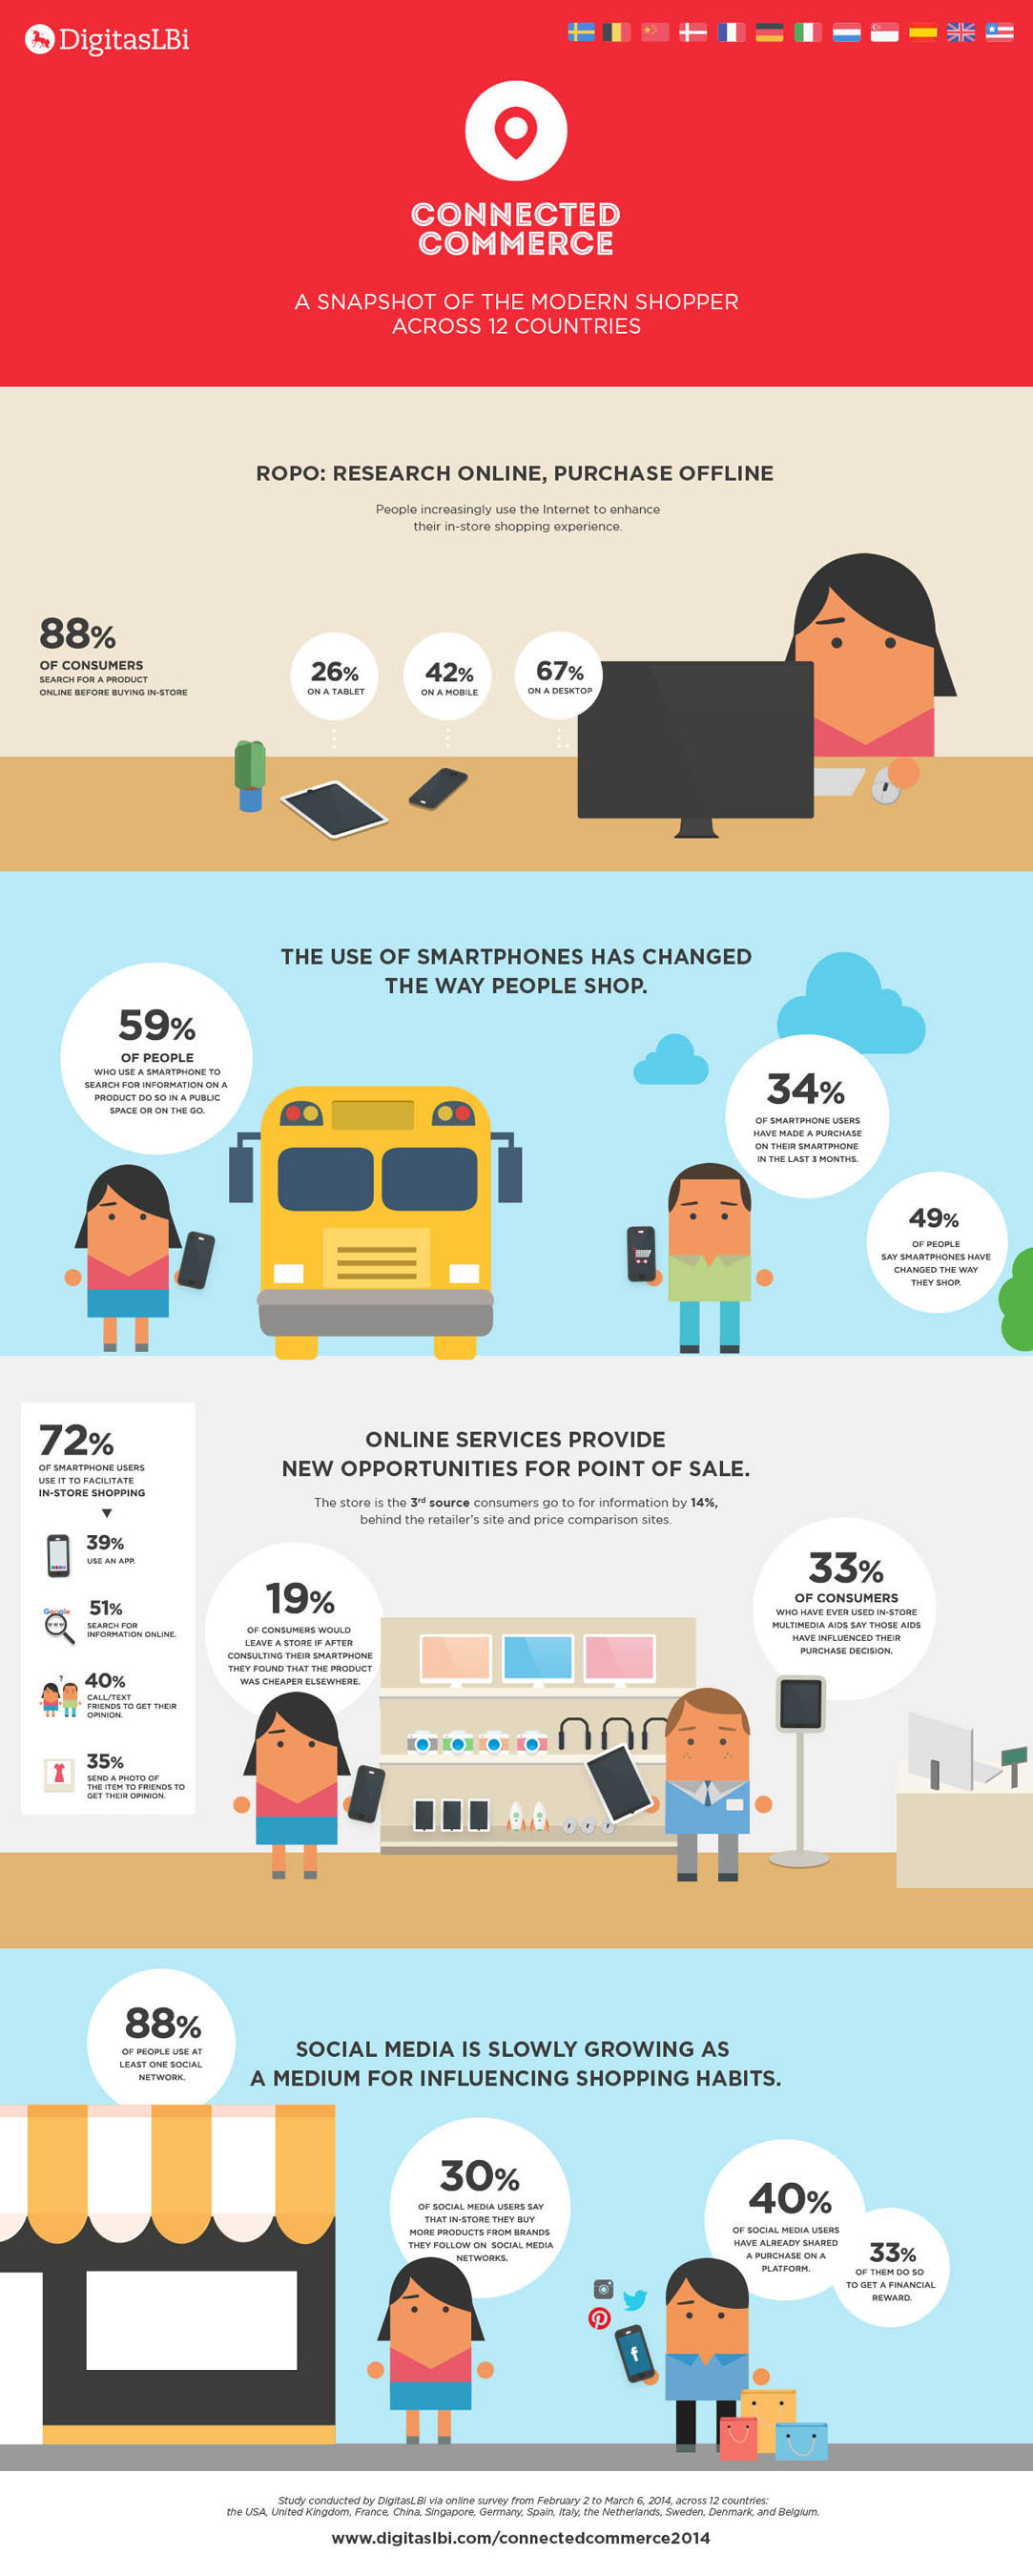 Connected Commerce: A Snapshot of the Modern Shopper across 12 Countries, by DigitasLBi.(PRNewsFoto/DigitasLBi) (PRNewsFoto/DIGITASLBI)